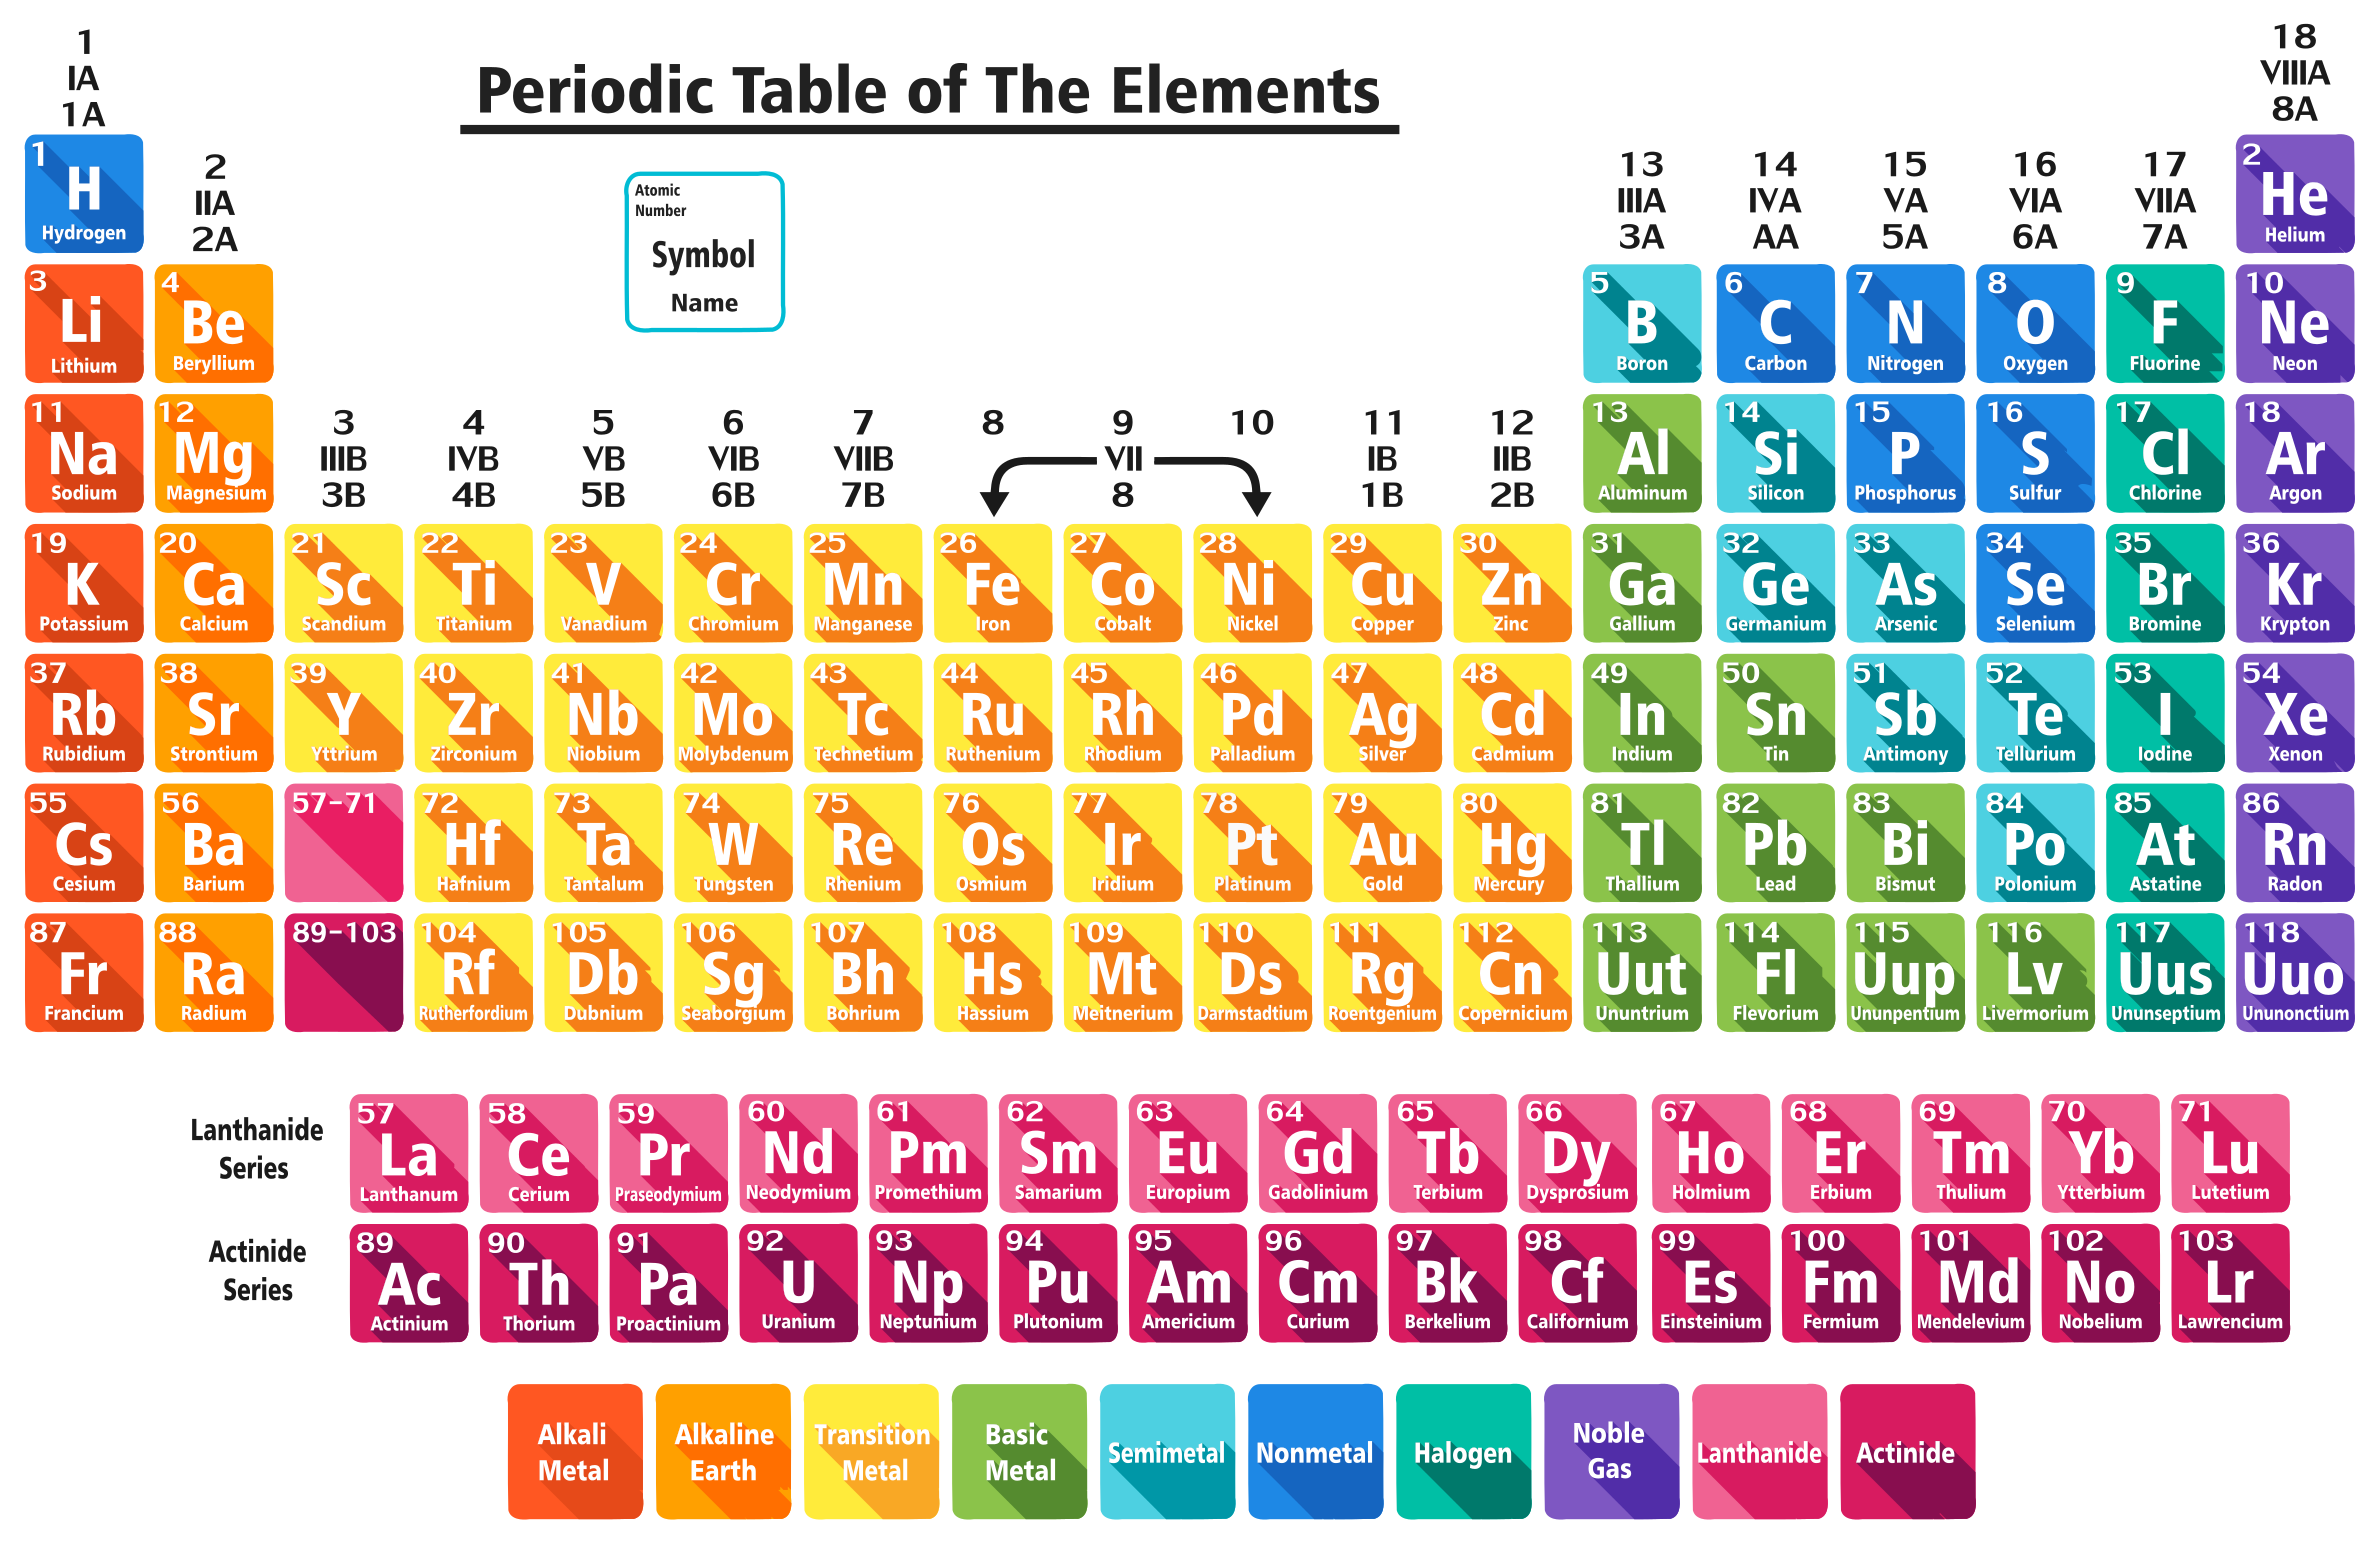 tagsthe periodic chart of table of the elements wyzantinteractive periodic table of elements shows how thesemiconductor electronics britannicacom - Periodic Table Of Elements On Wikipedia